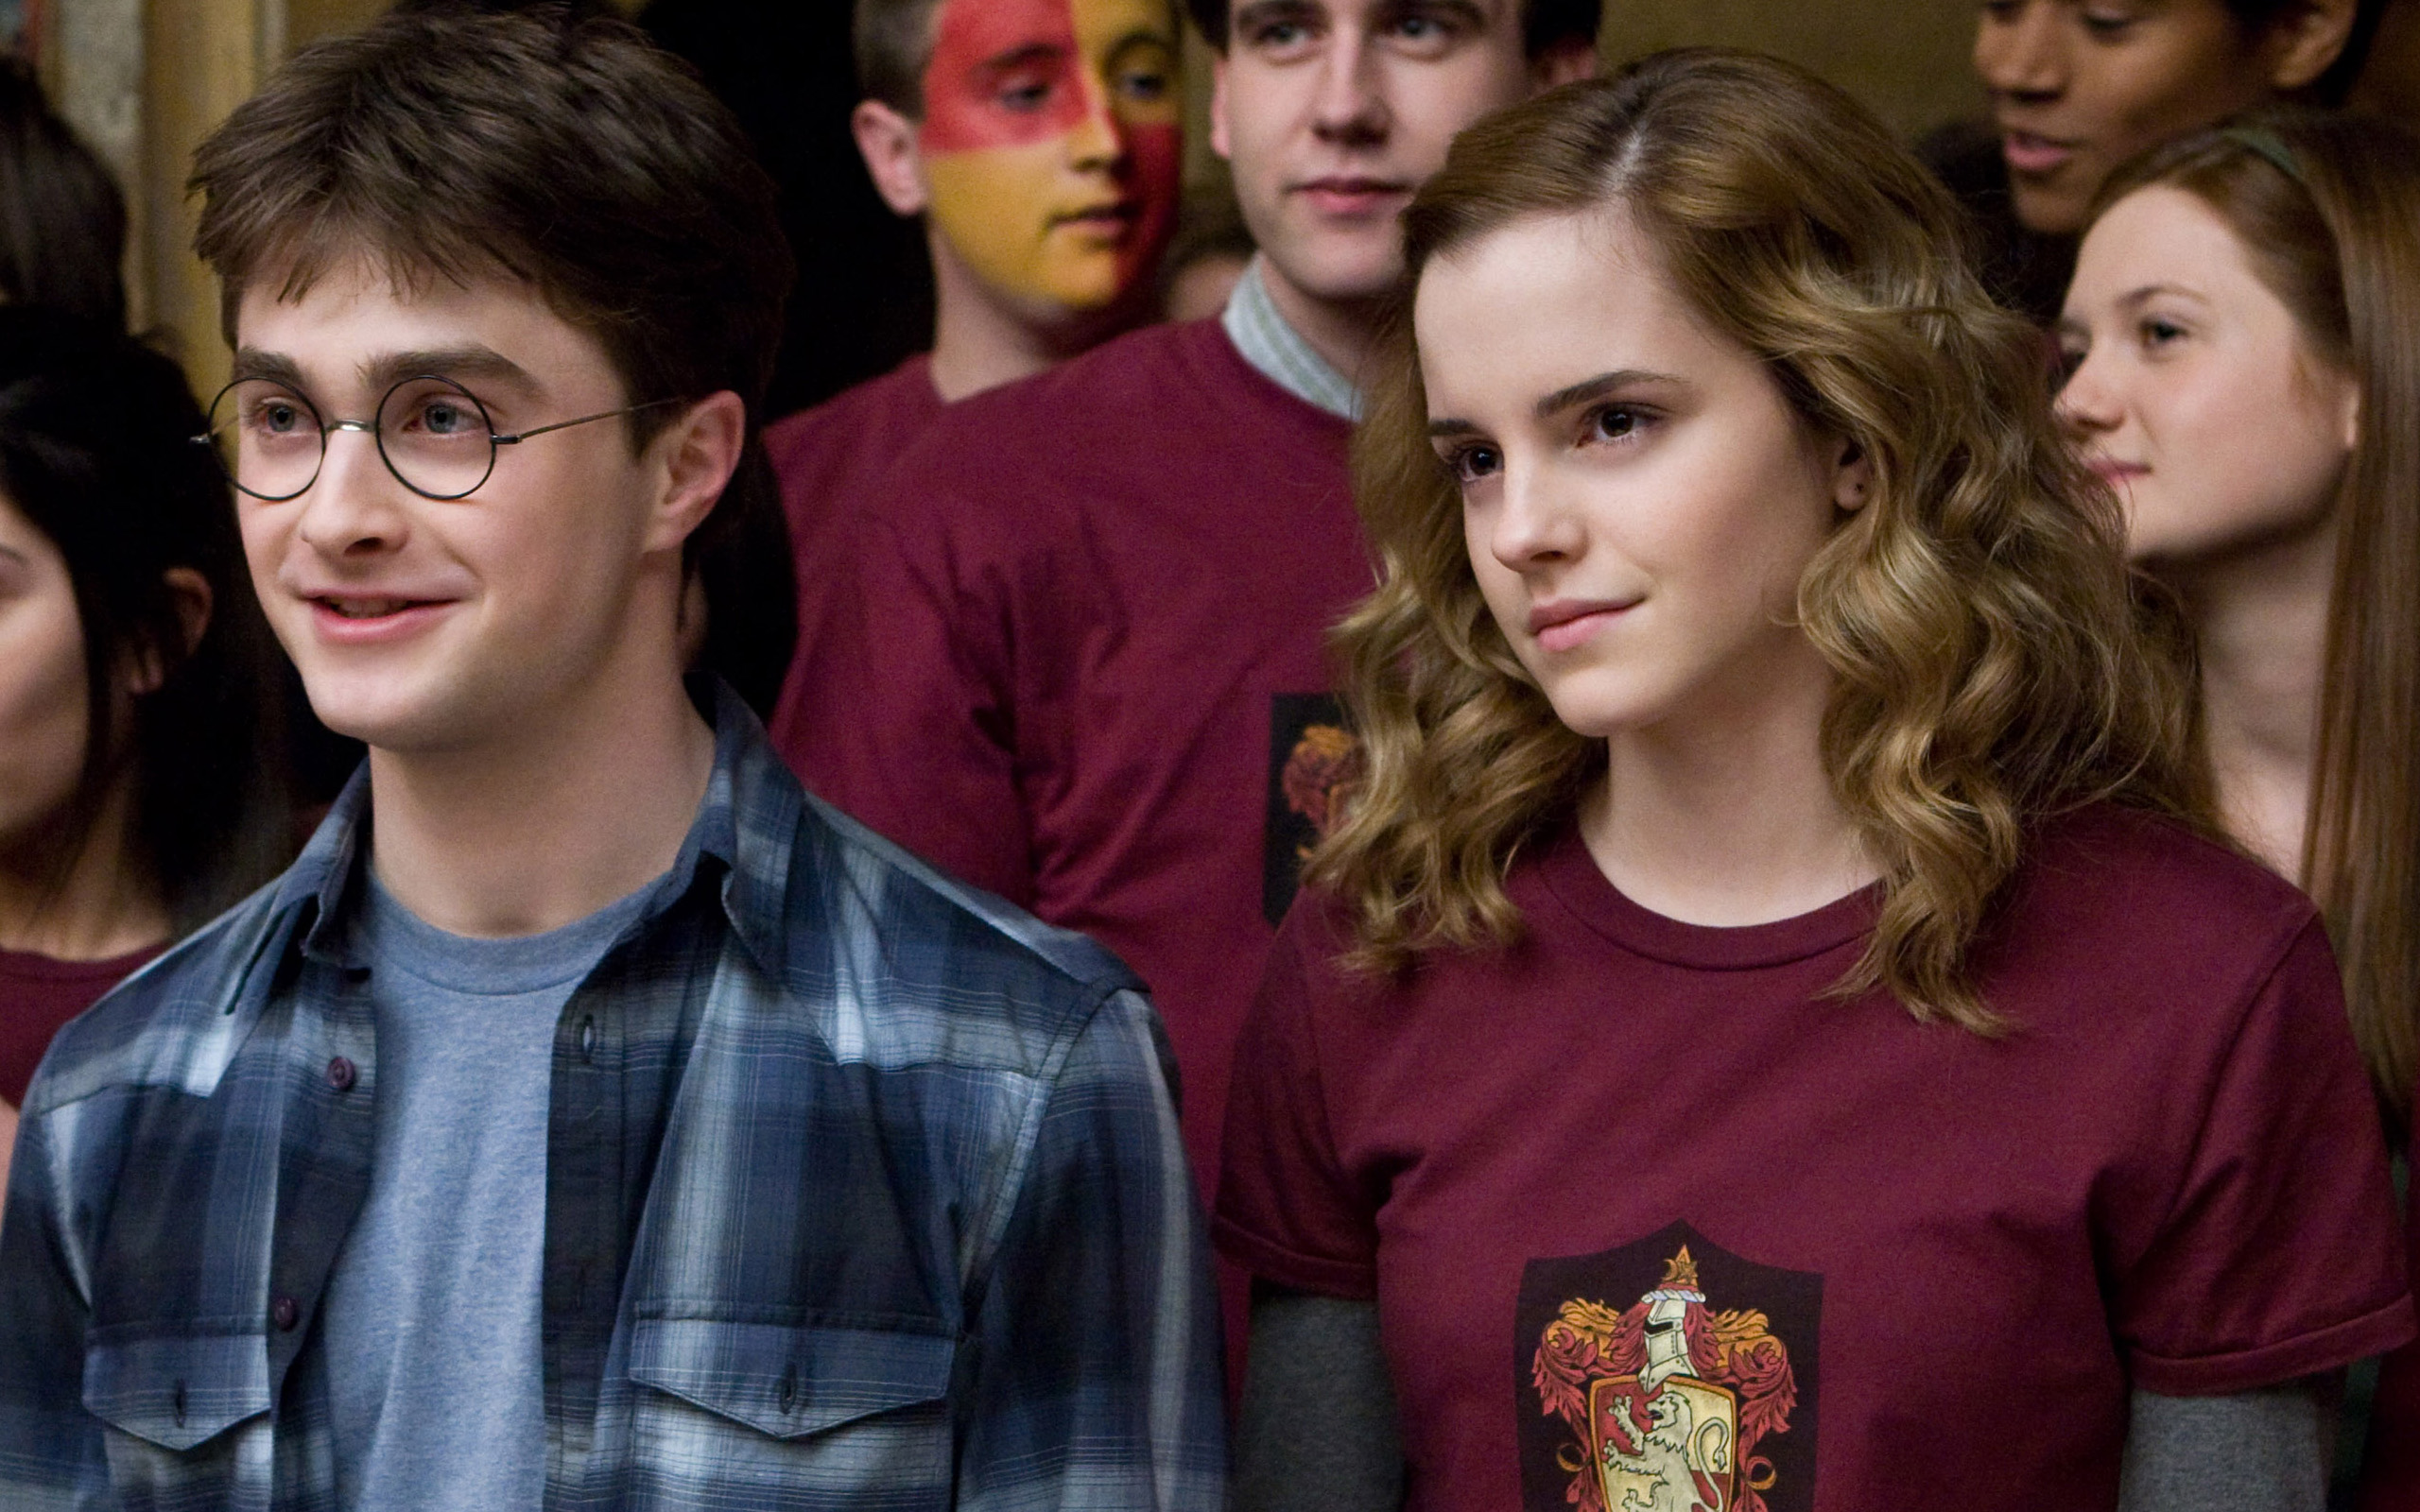 Emma Watson in Harry Potter 6 New 726.65 Kb